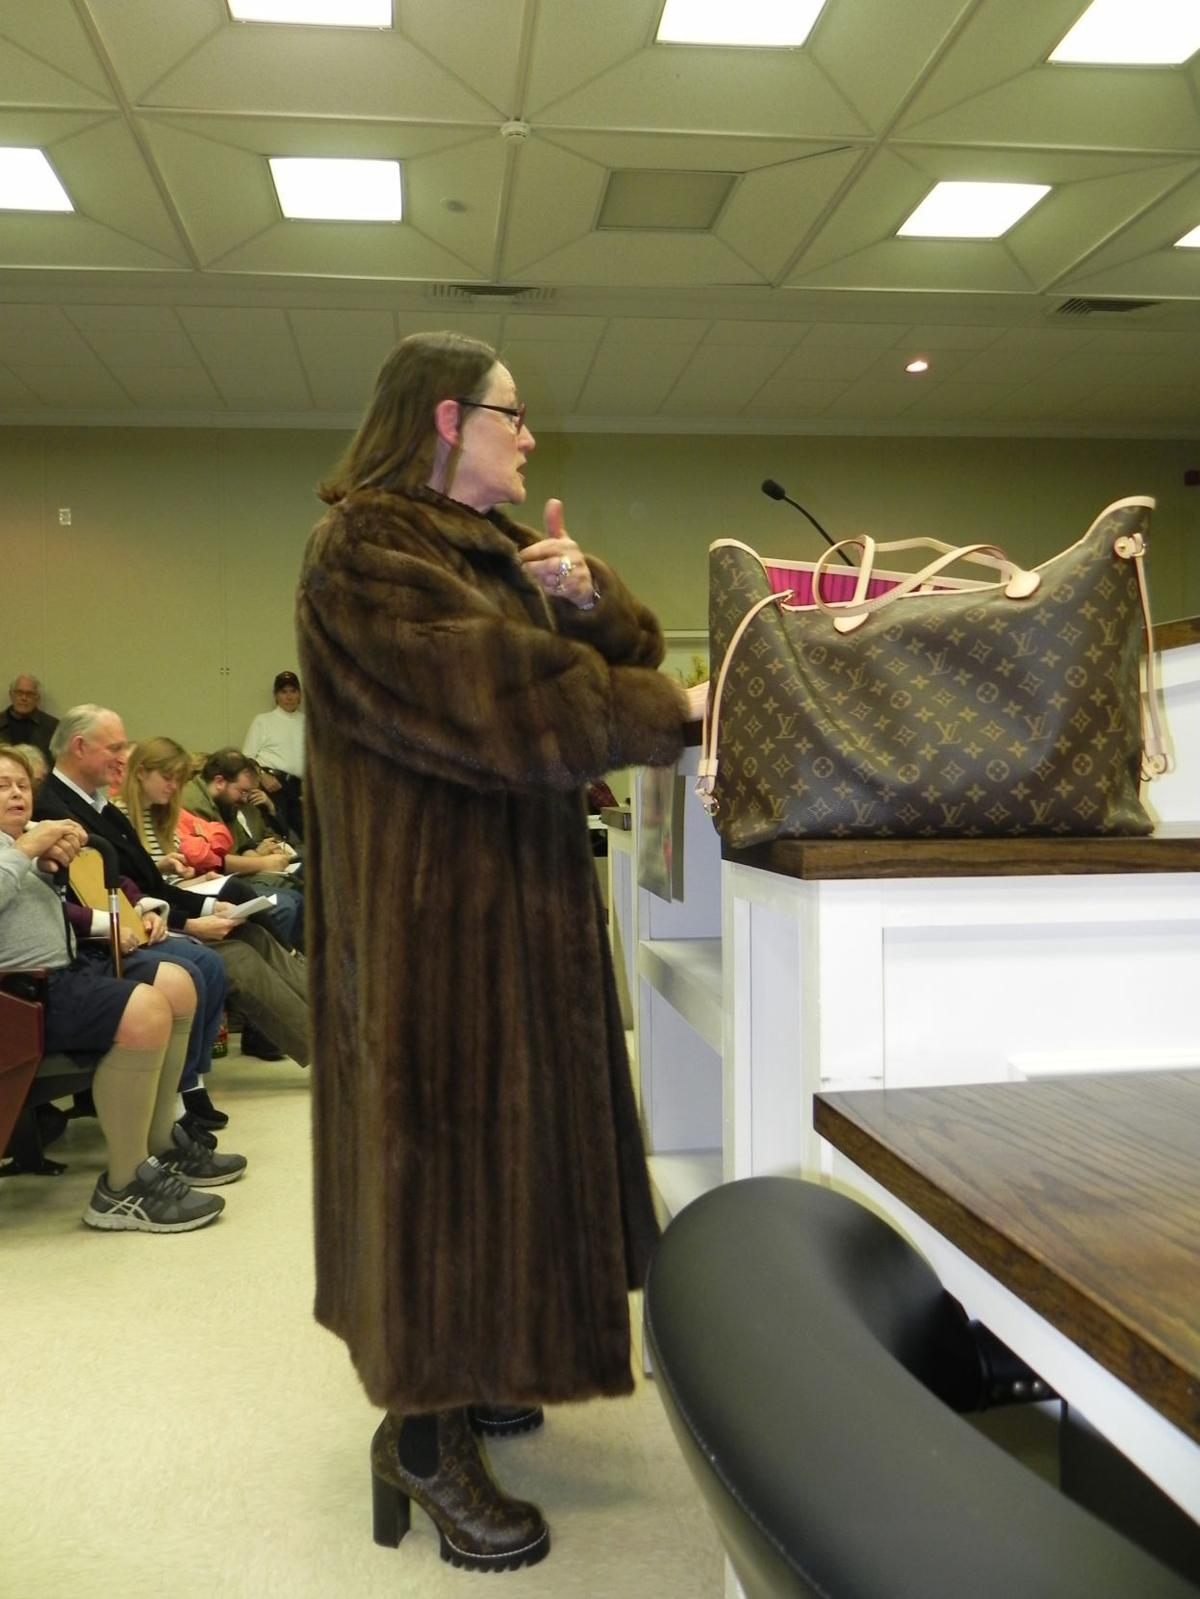 Westmoreland attorney makes fashionable case against